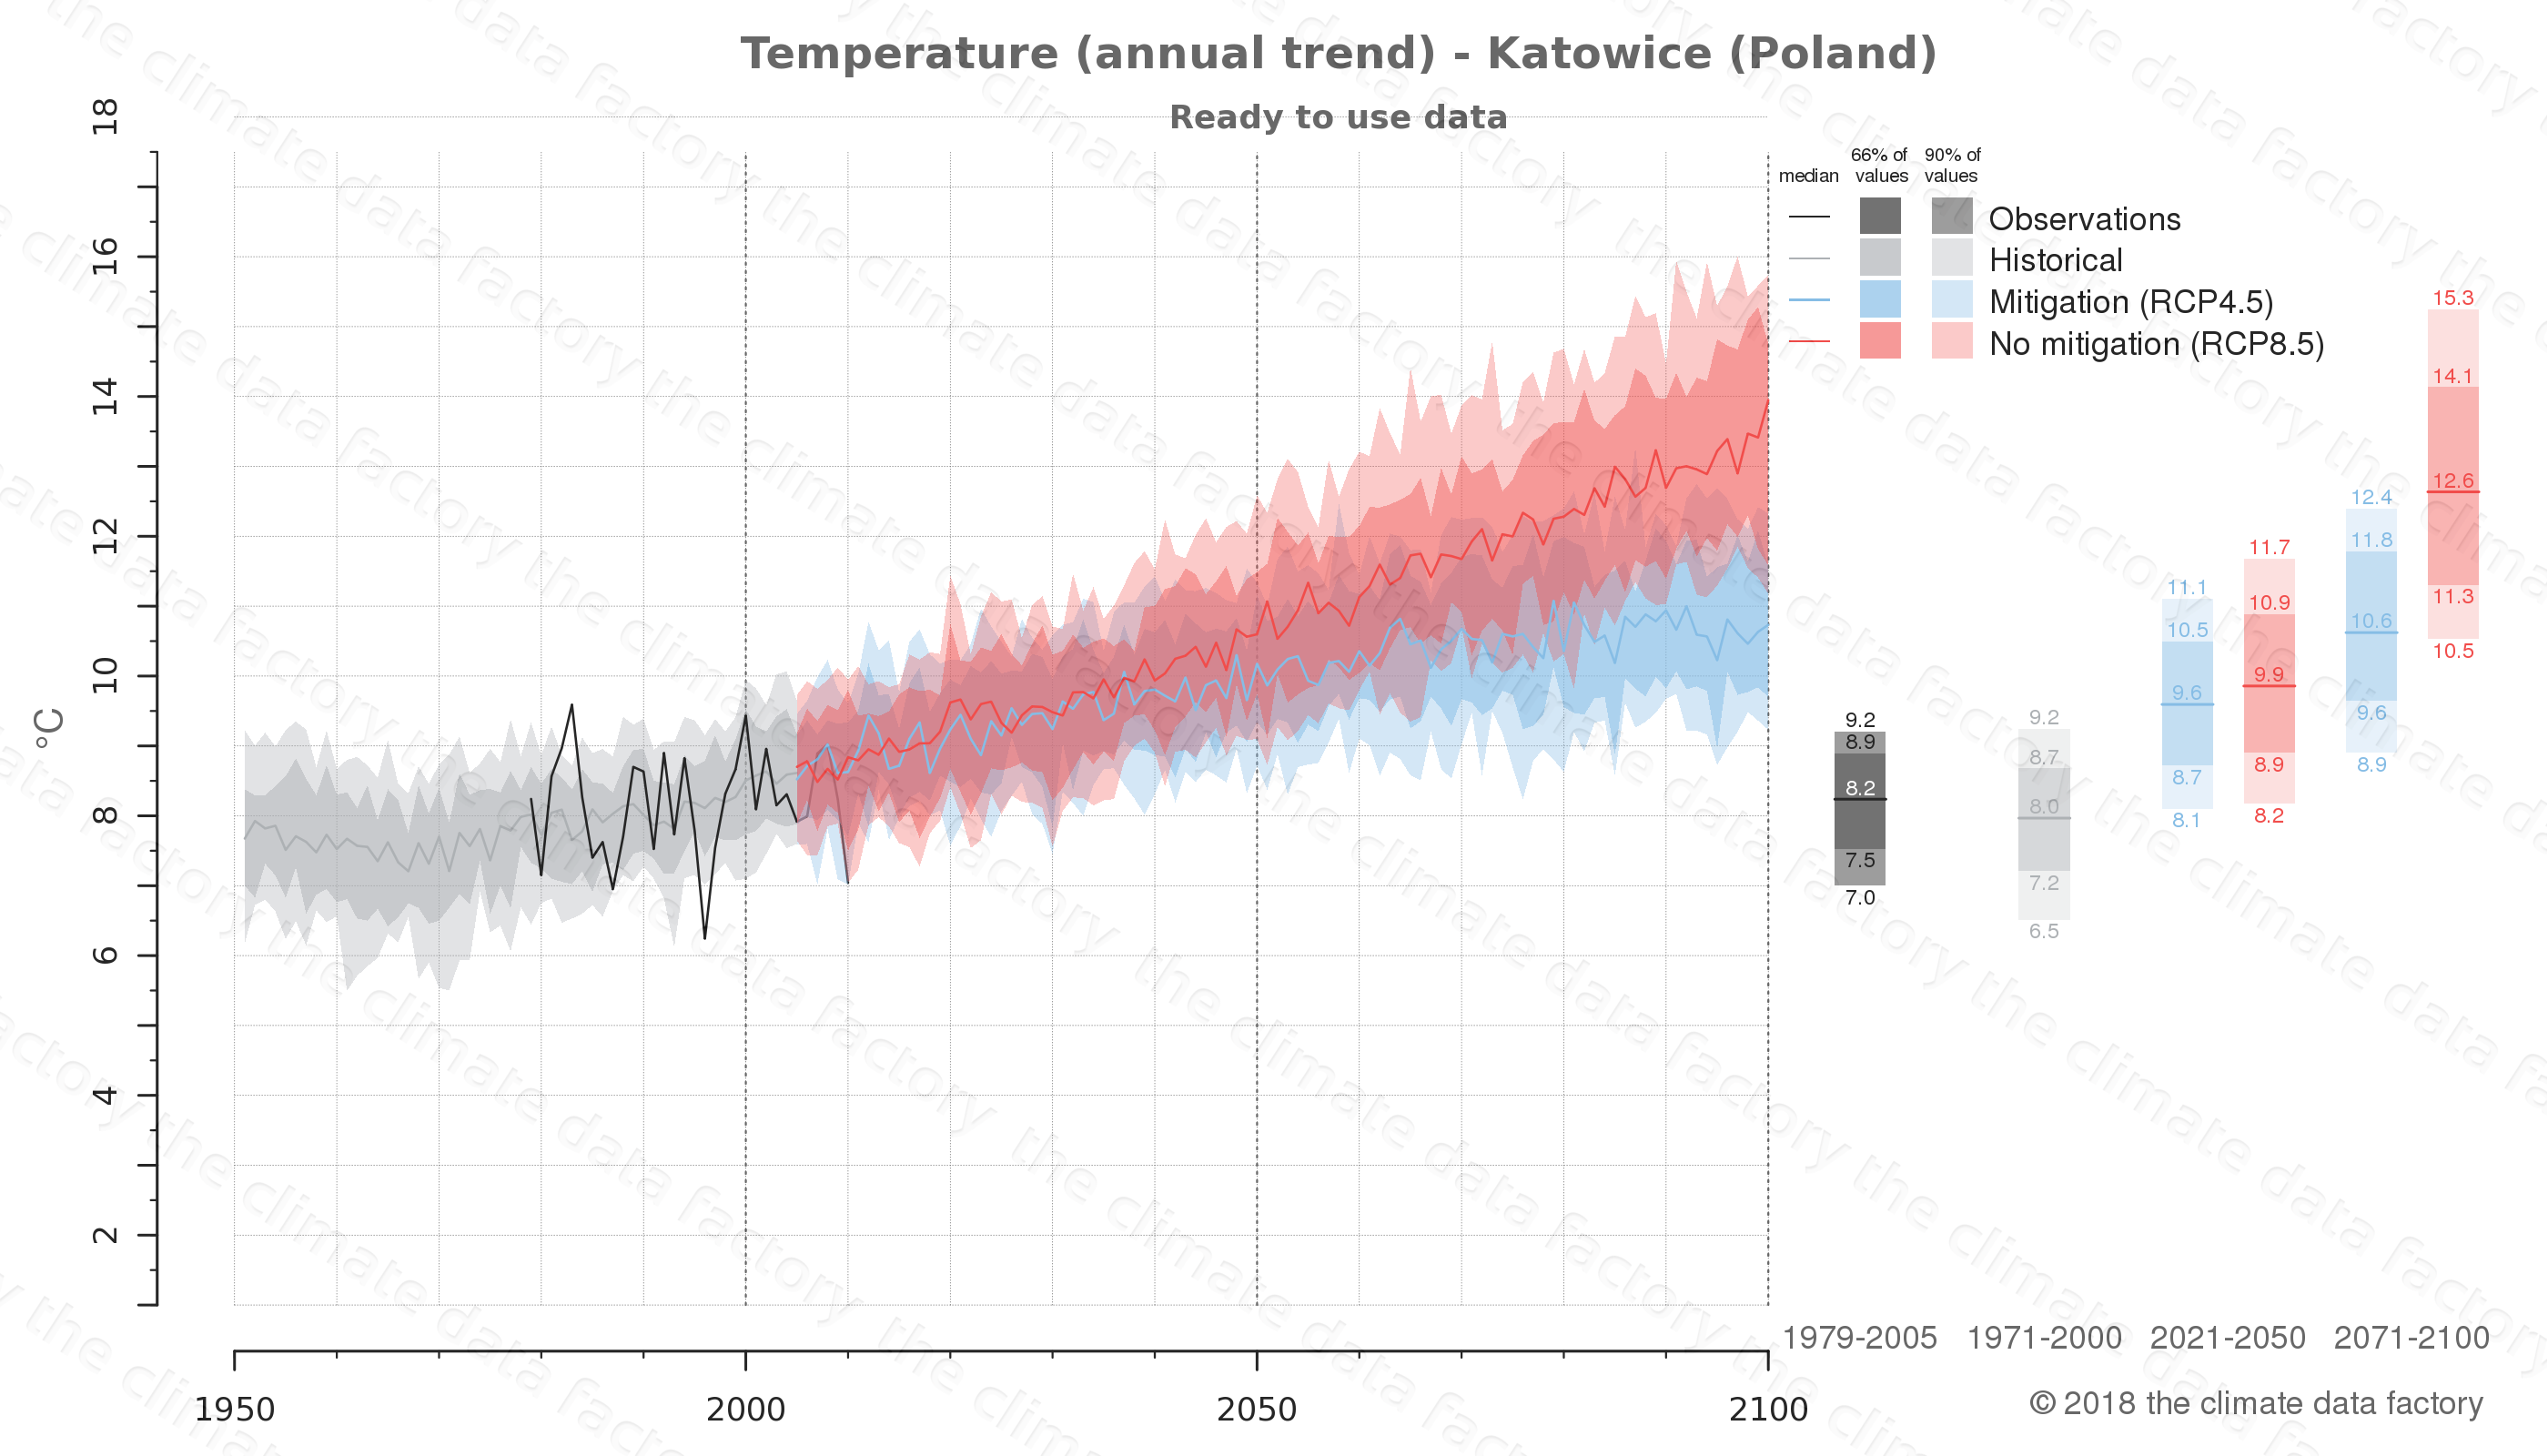 climate change data policy adaptation climate graph city data temperature katowice poland